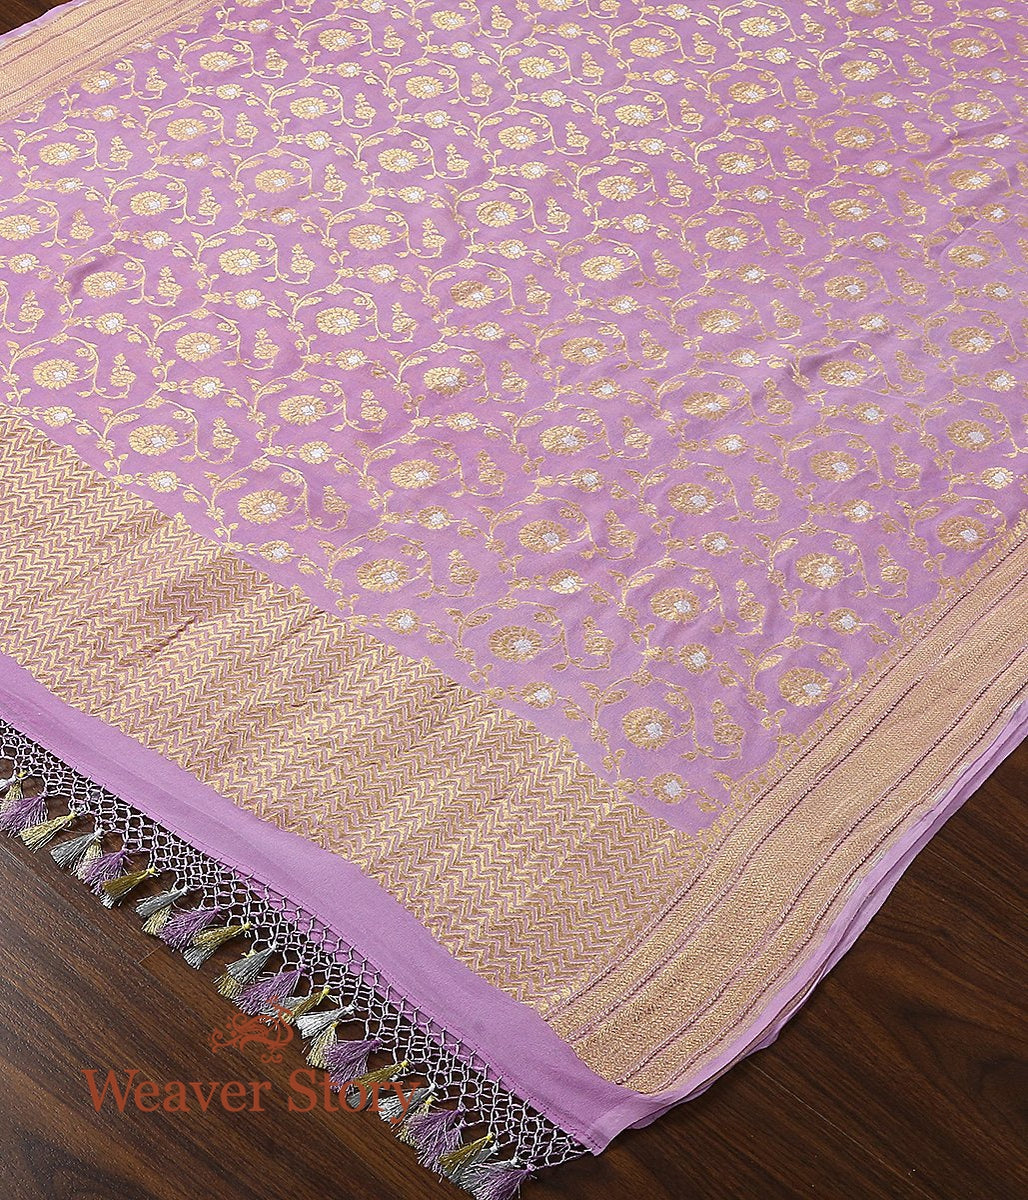 Handwoven Banarasi Georgette Cutwork Dupatta in Light Purple